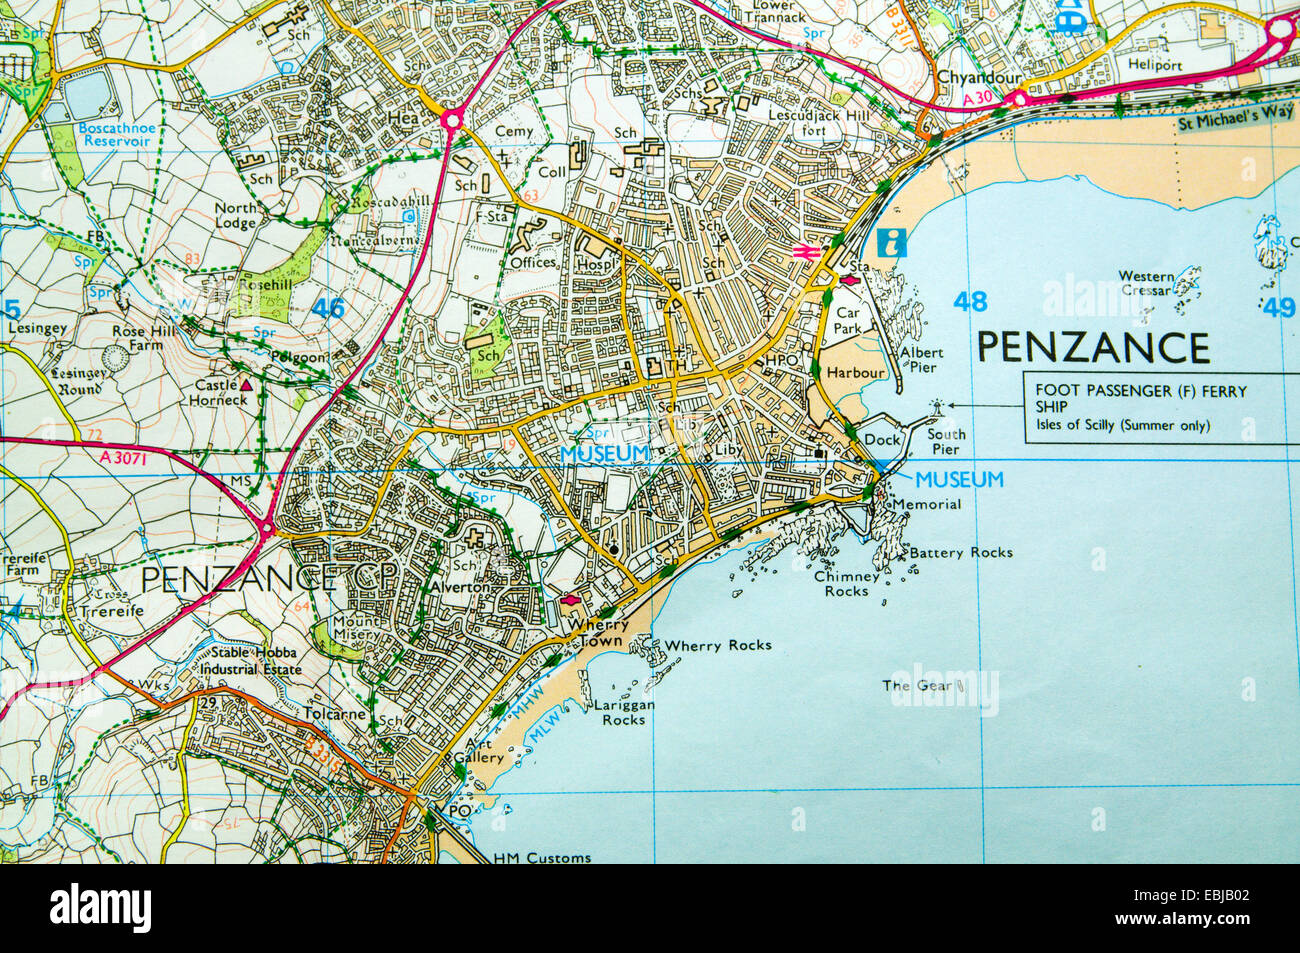 Map Of Penzance Ordnance Survey Map of Penzance, Cornwall, England Stock Photo